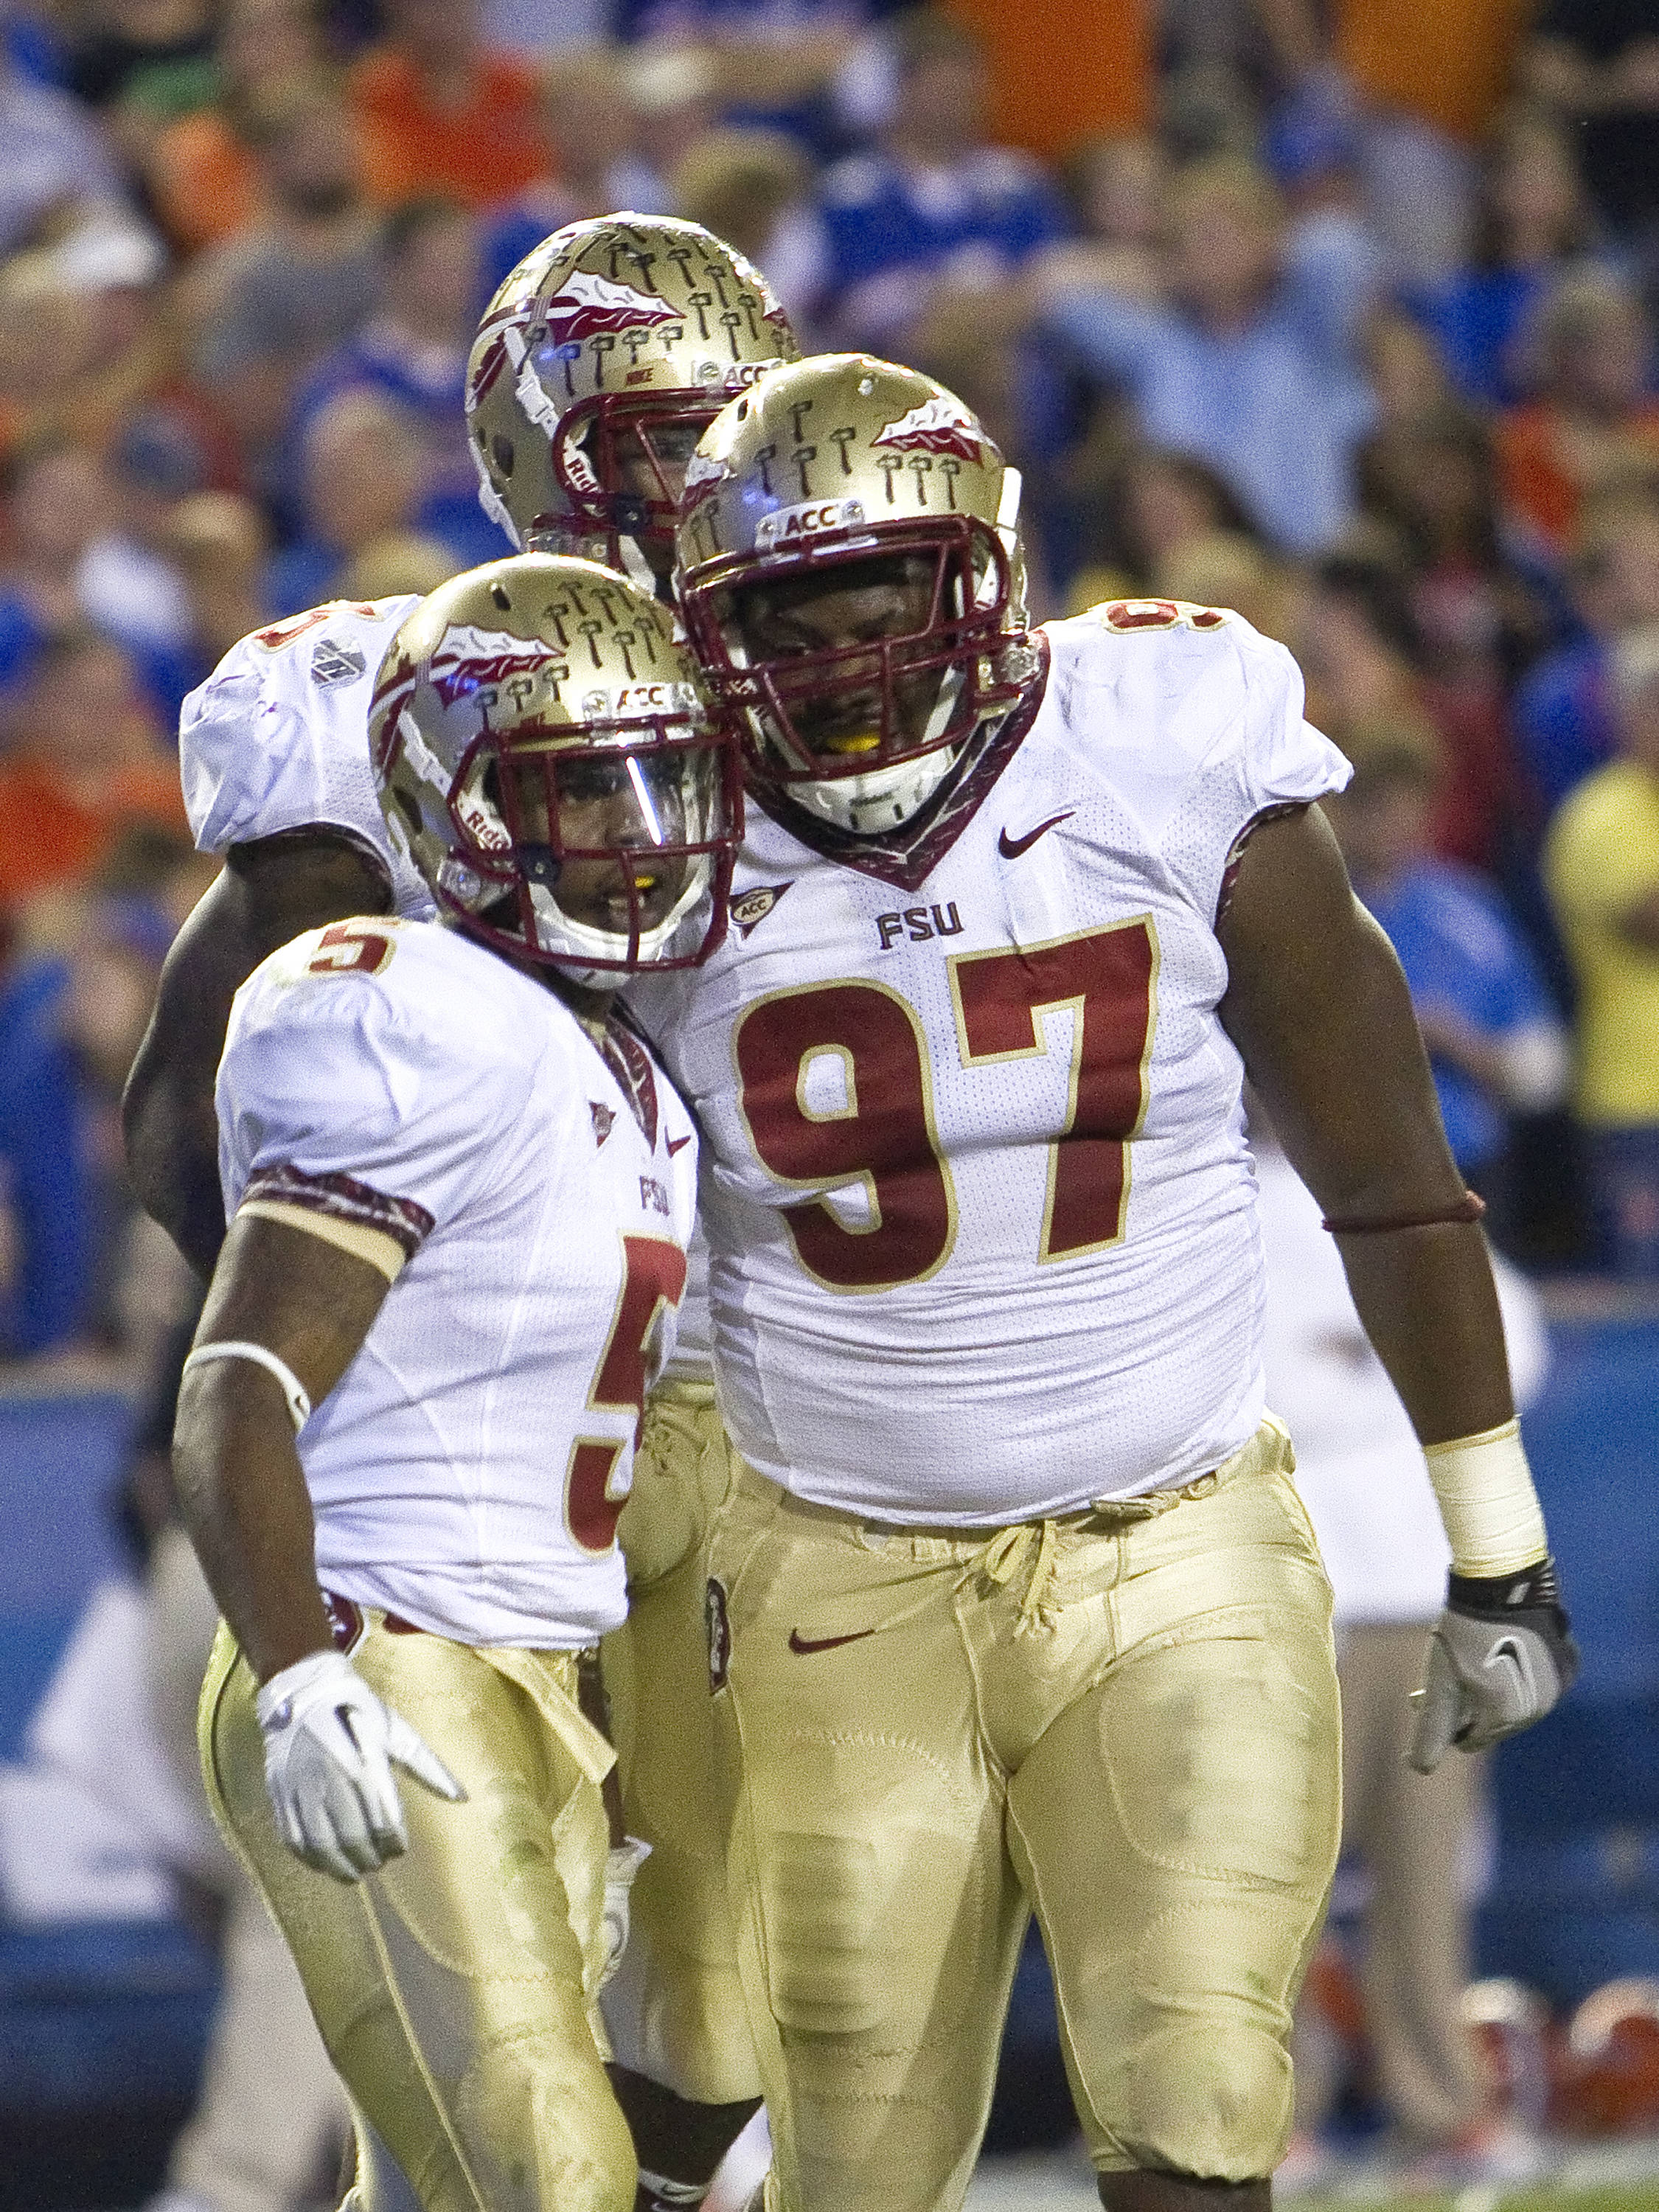 Demonte McAllister (97) and Greg Reid (5) celebrate a defensive stop, FSU vs Florida, 11/26/2011